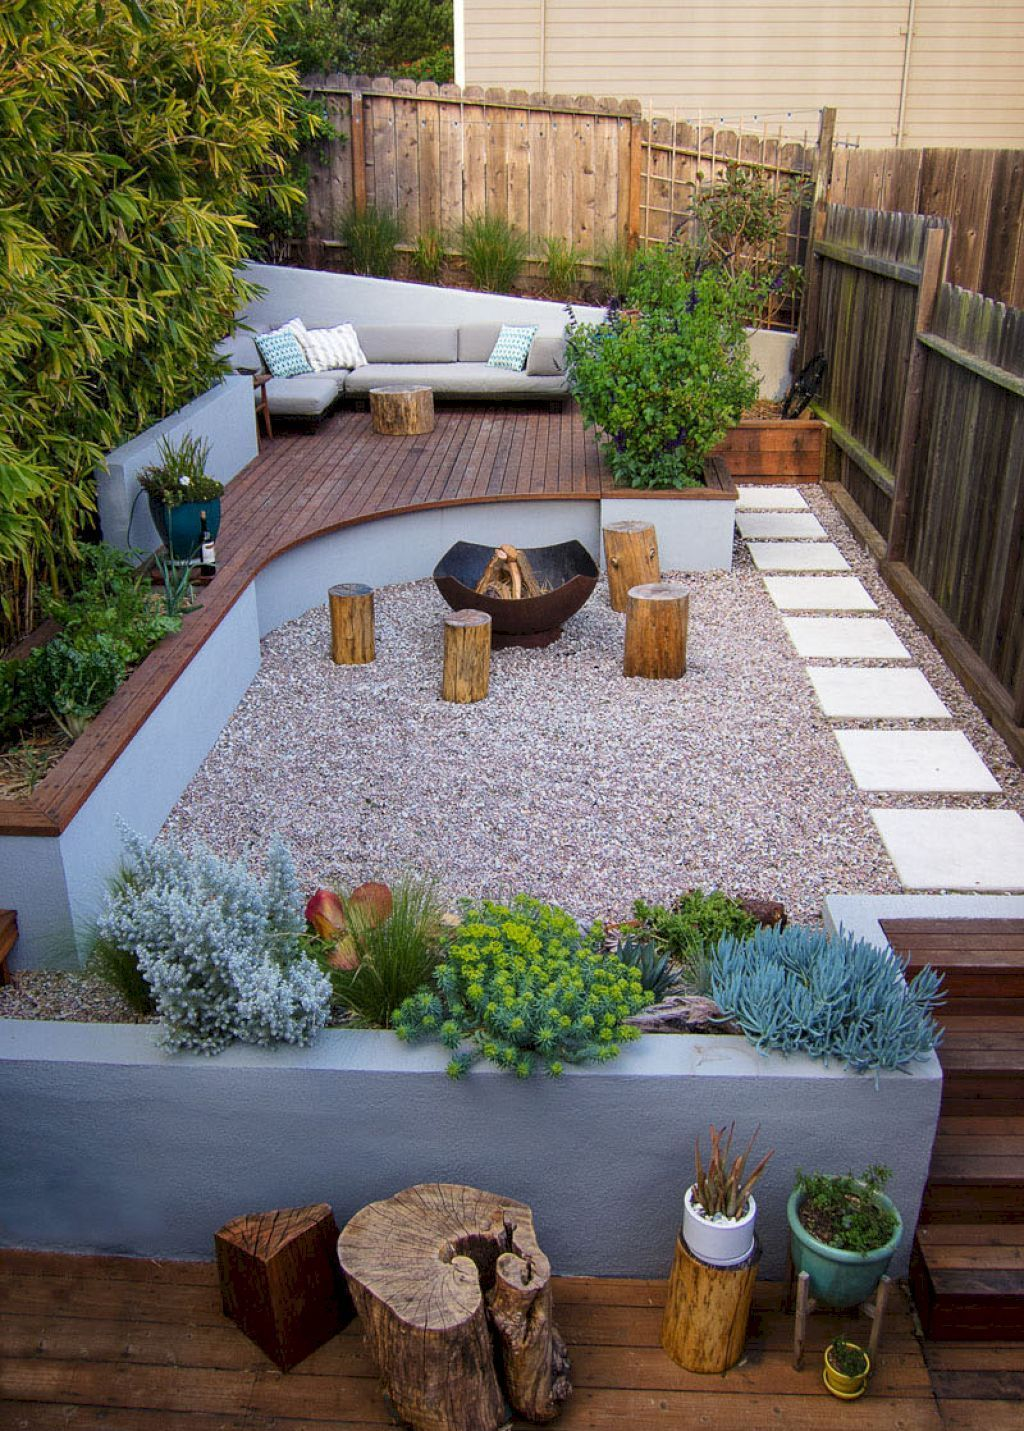 45 Fresh And Beautiful Backyard Landscaping Ideas On A Budget   InsideDecor